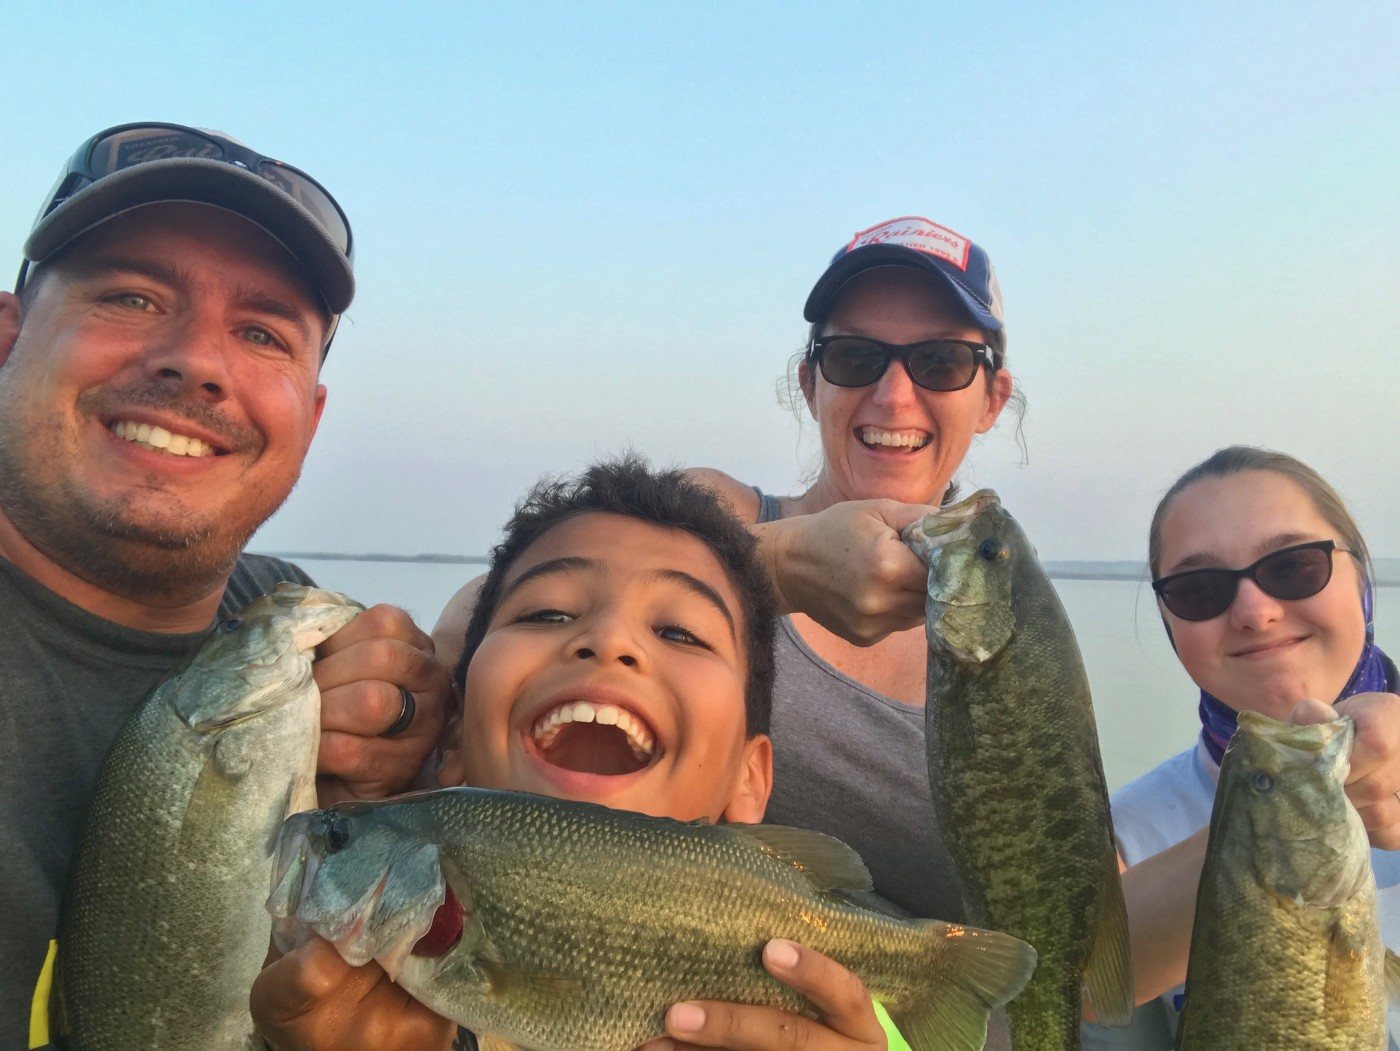 Anglers happily show off their bass catches.